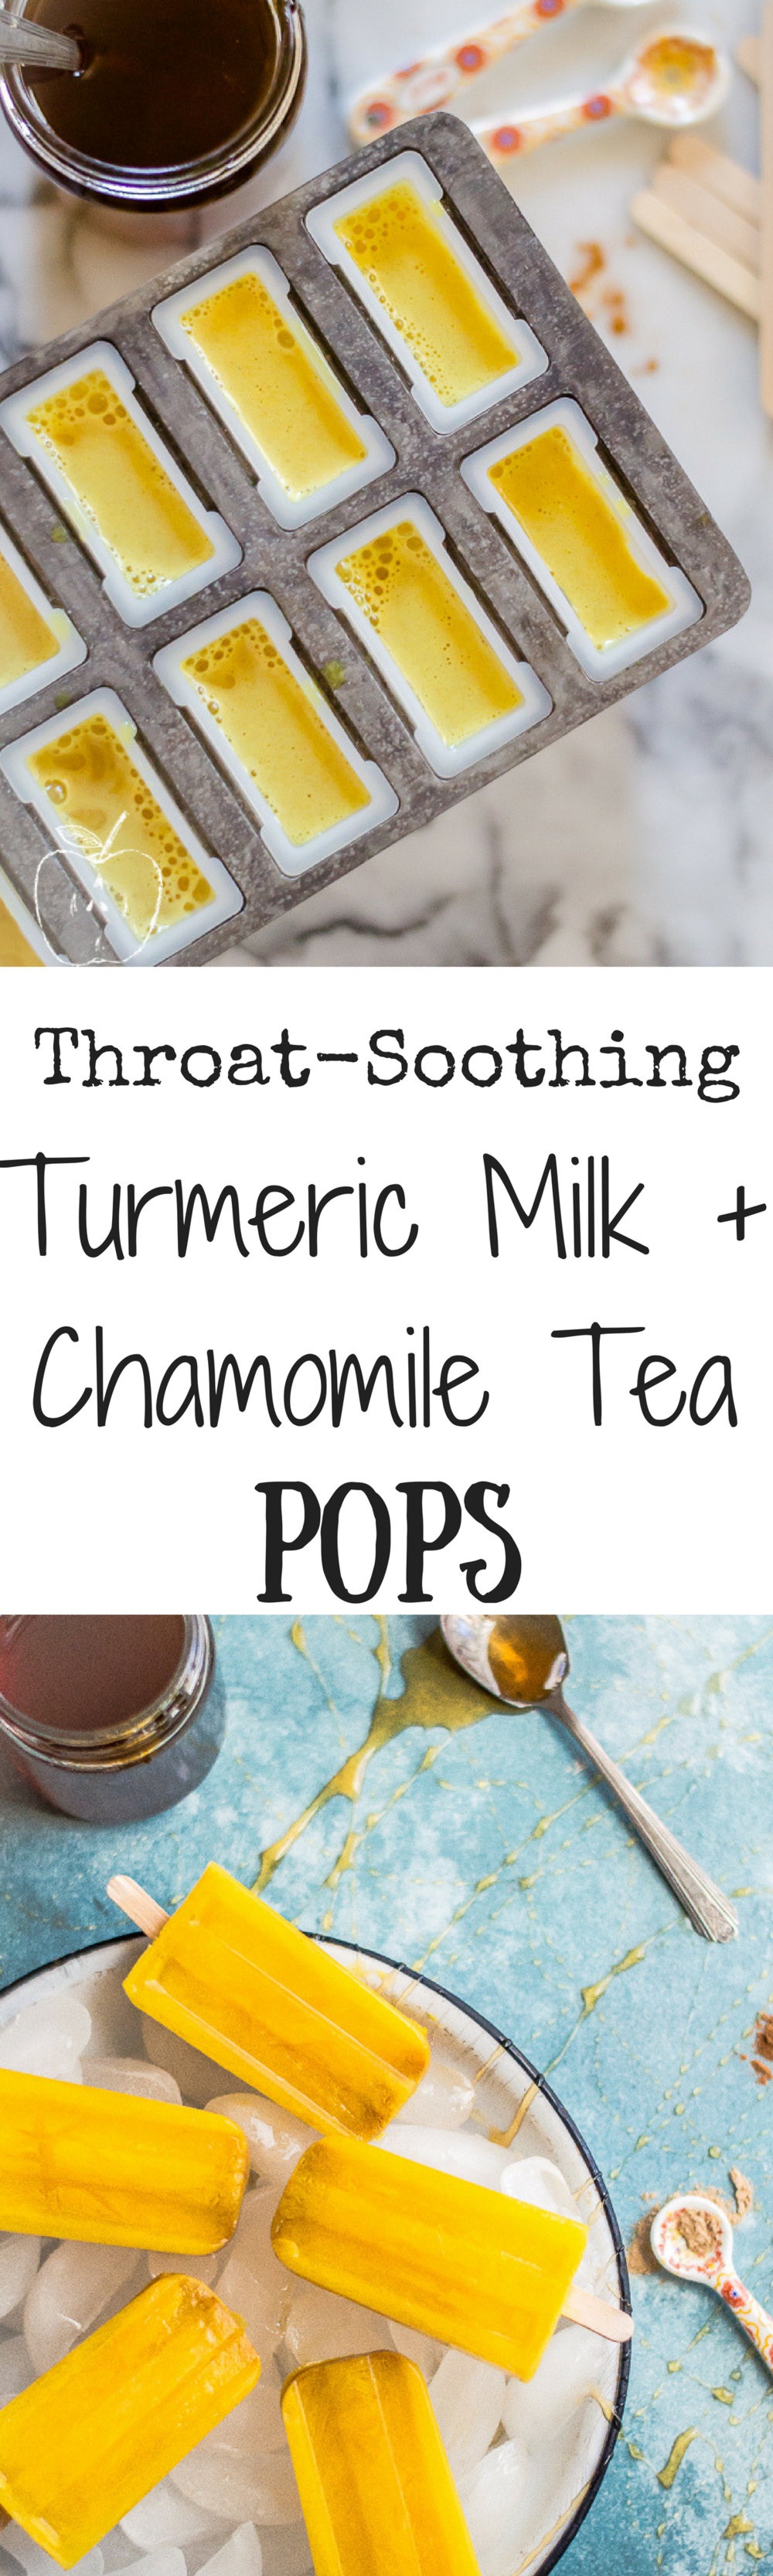 Throat-Soothing Turmeric Milk + Chamomile Tea Pops